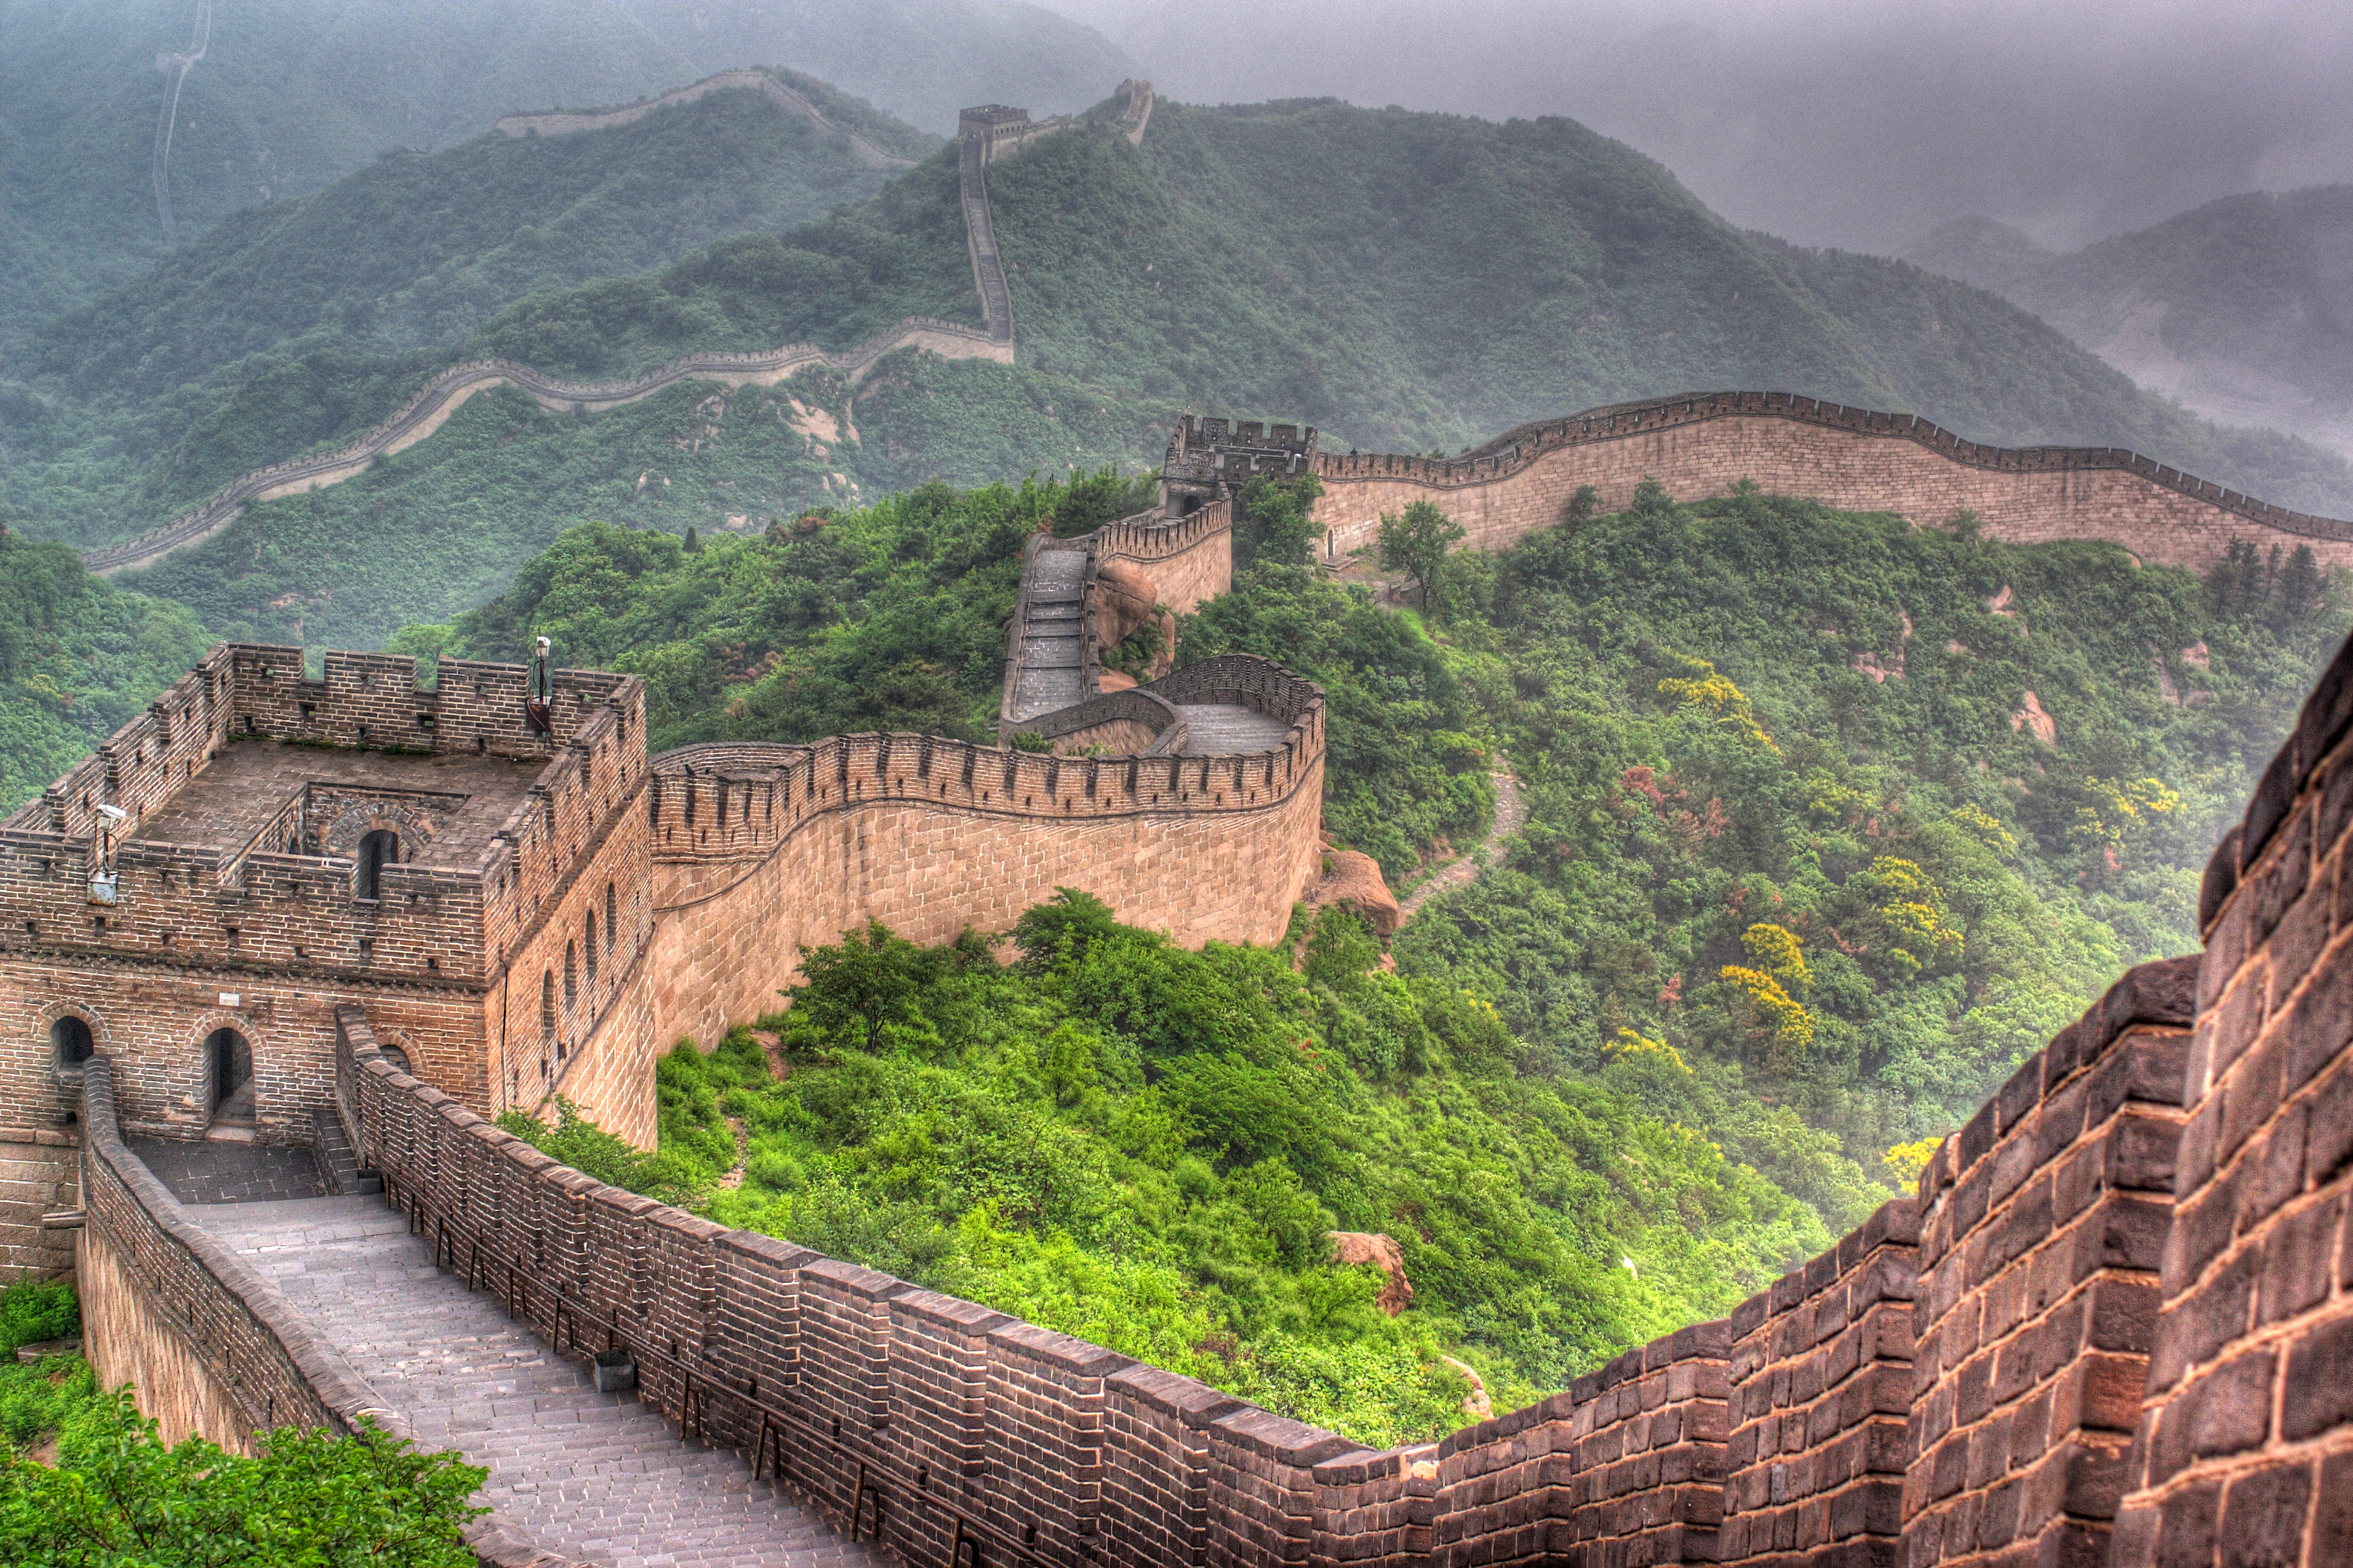 Discover the Great Wall of China's 'must see' highlights - Tinggly